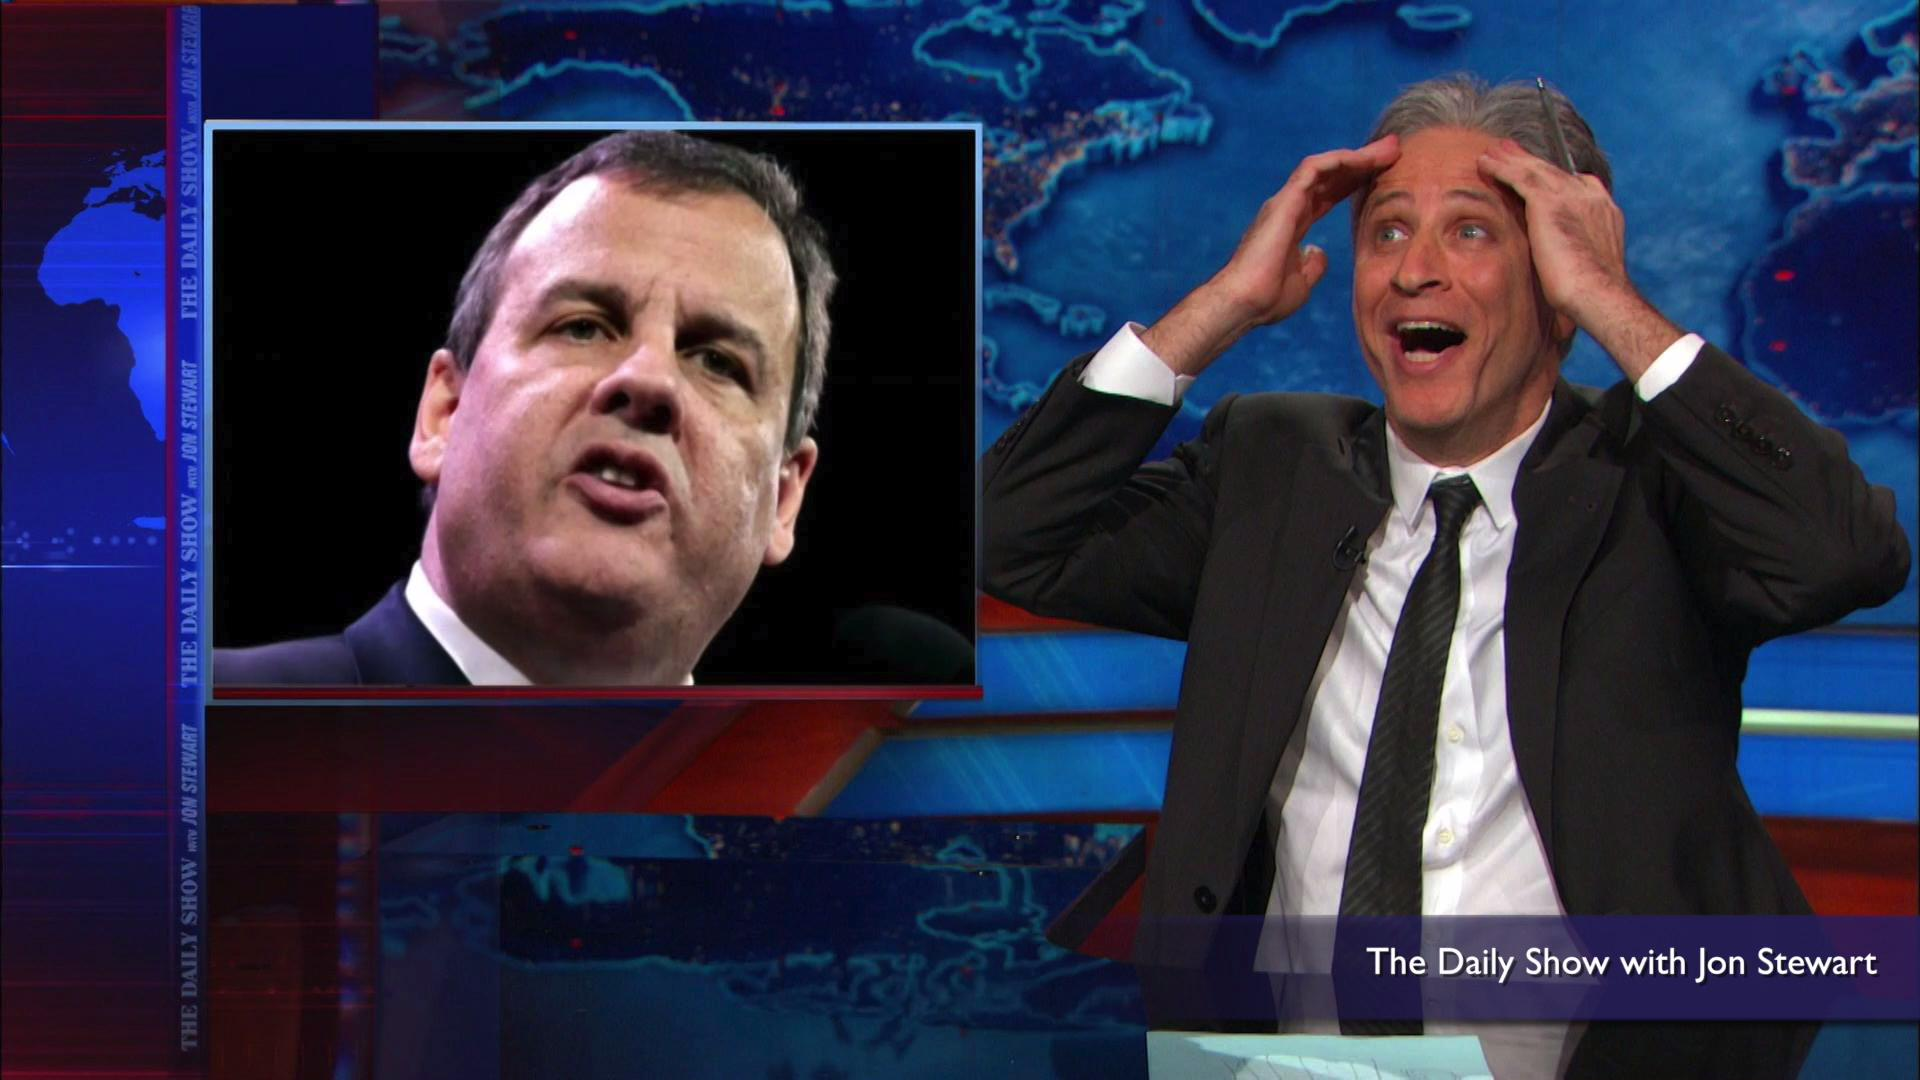 Jon Stewart's enemies rip him on 'The Daily Show's last episode